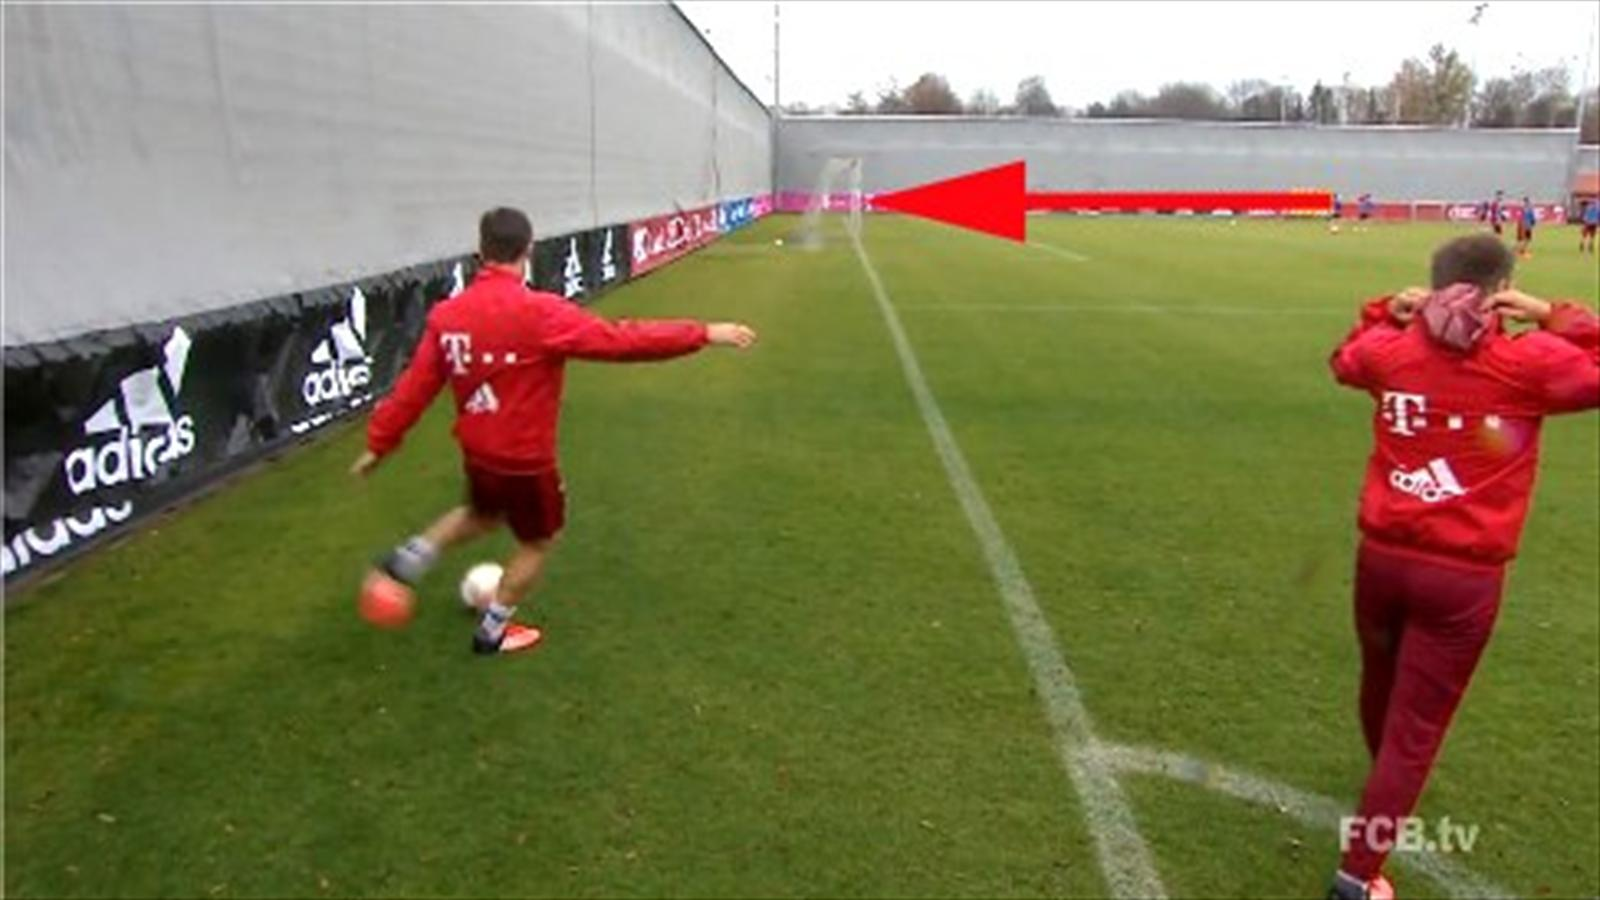 Xabi Alonso scores with outrageous behind-the-goal strike in Bayern Munich training (Twitter)